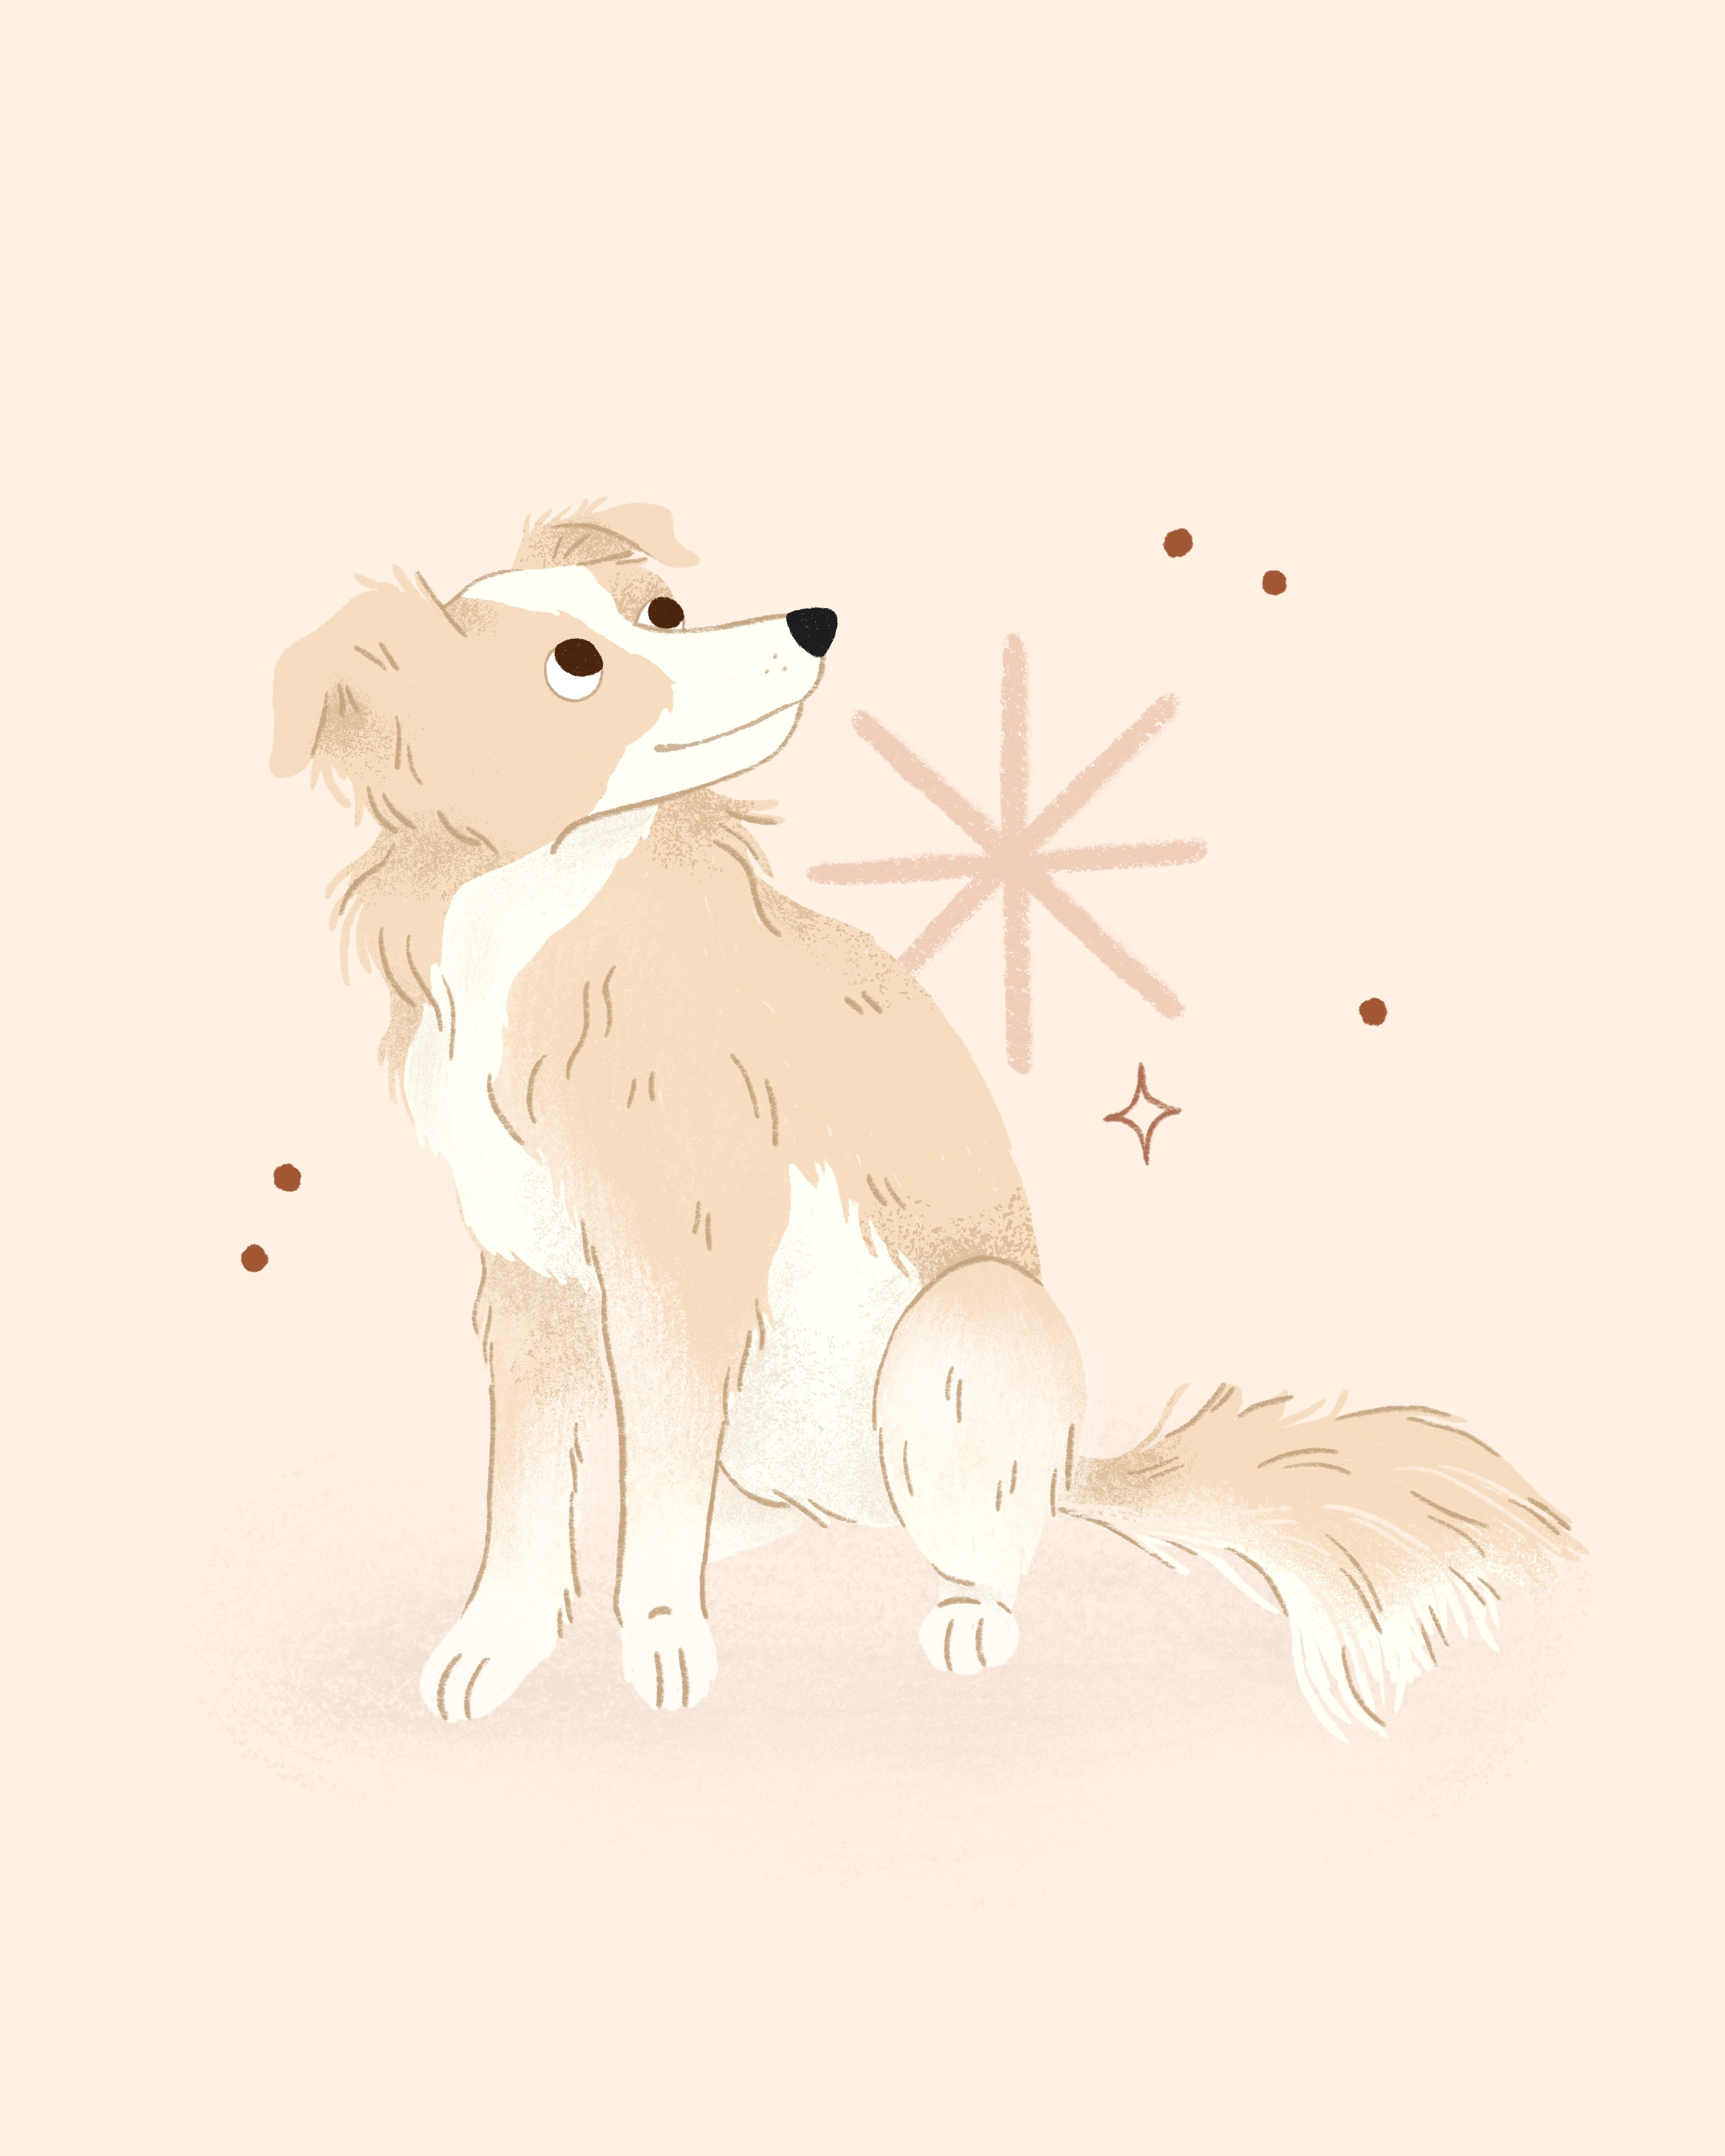 An illustrated portrait of a small floofy white and tan dog